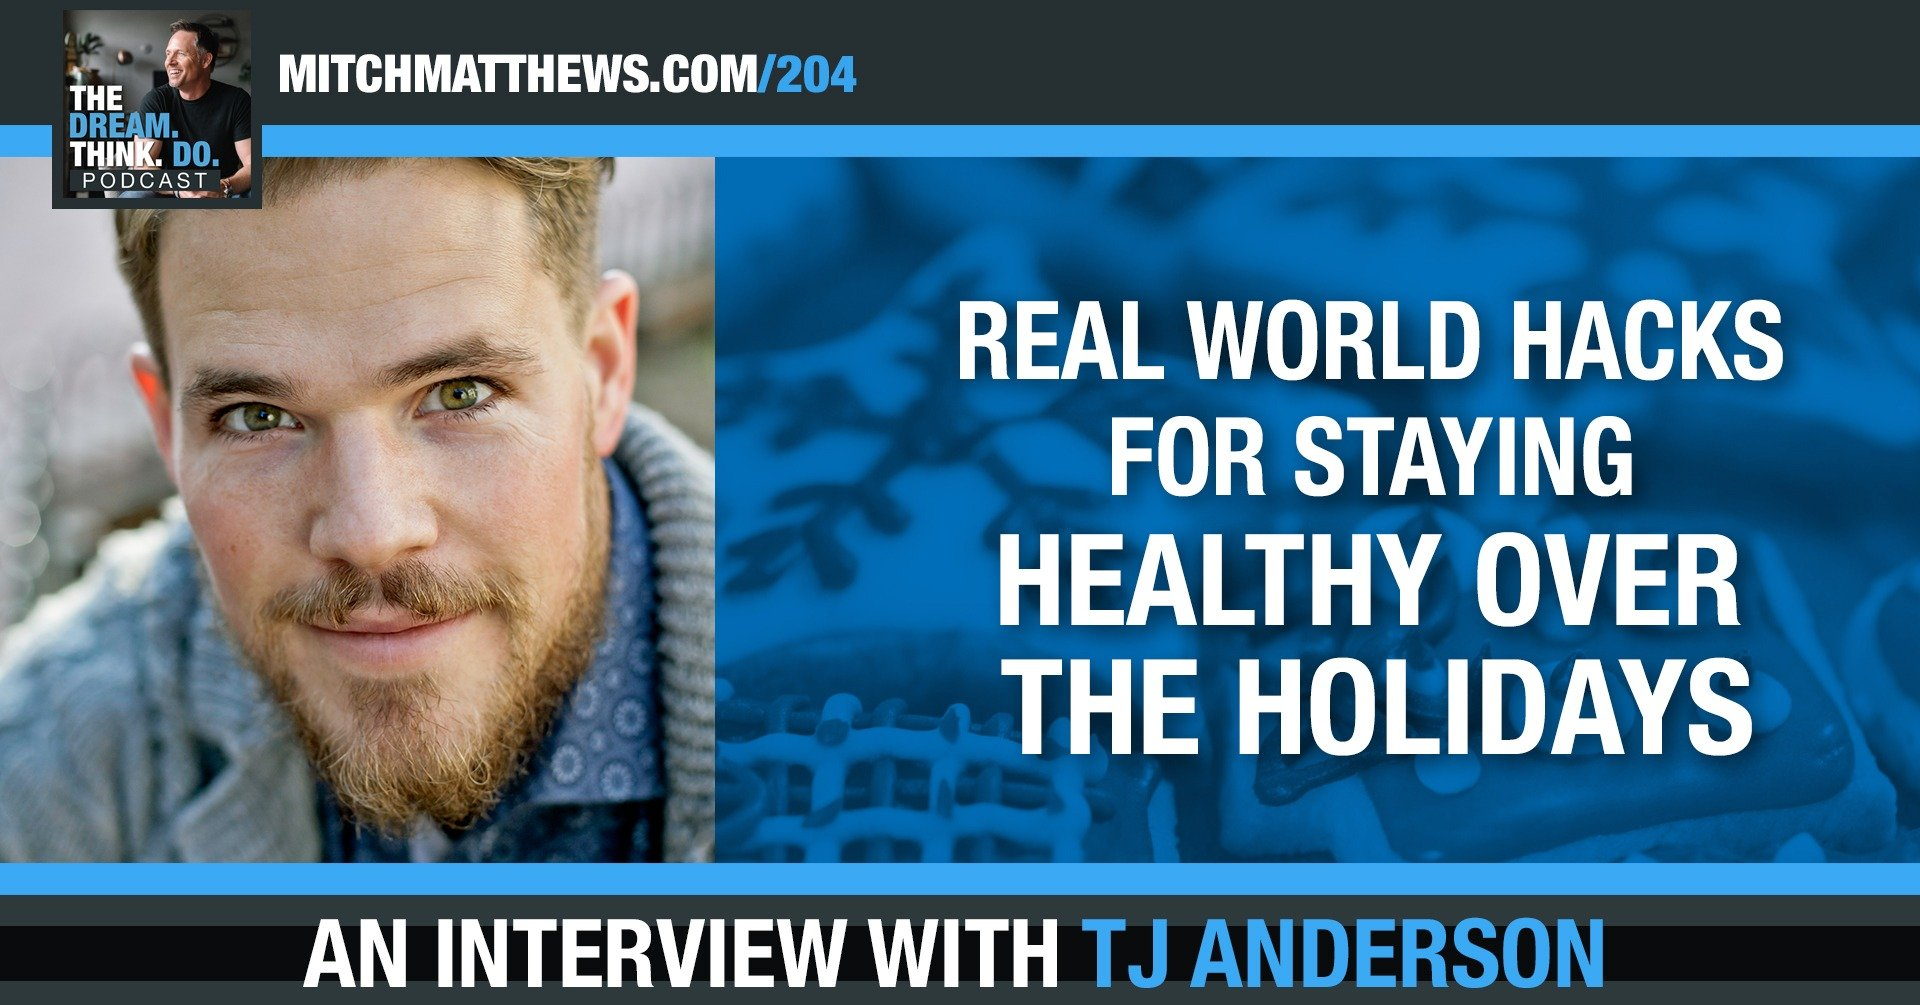 Real World Hacks for Staying Healthy Over the Holidays, with TJ Anderson